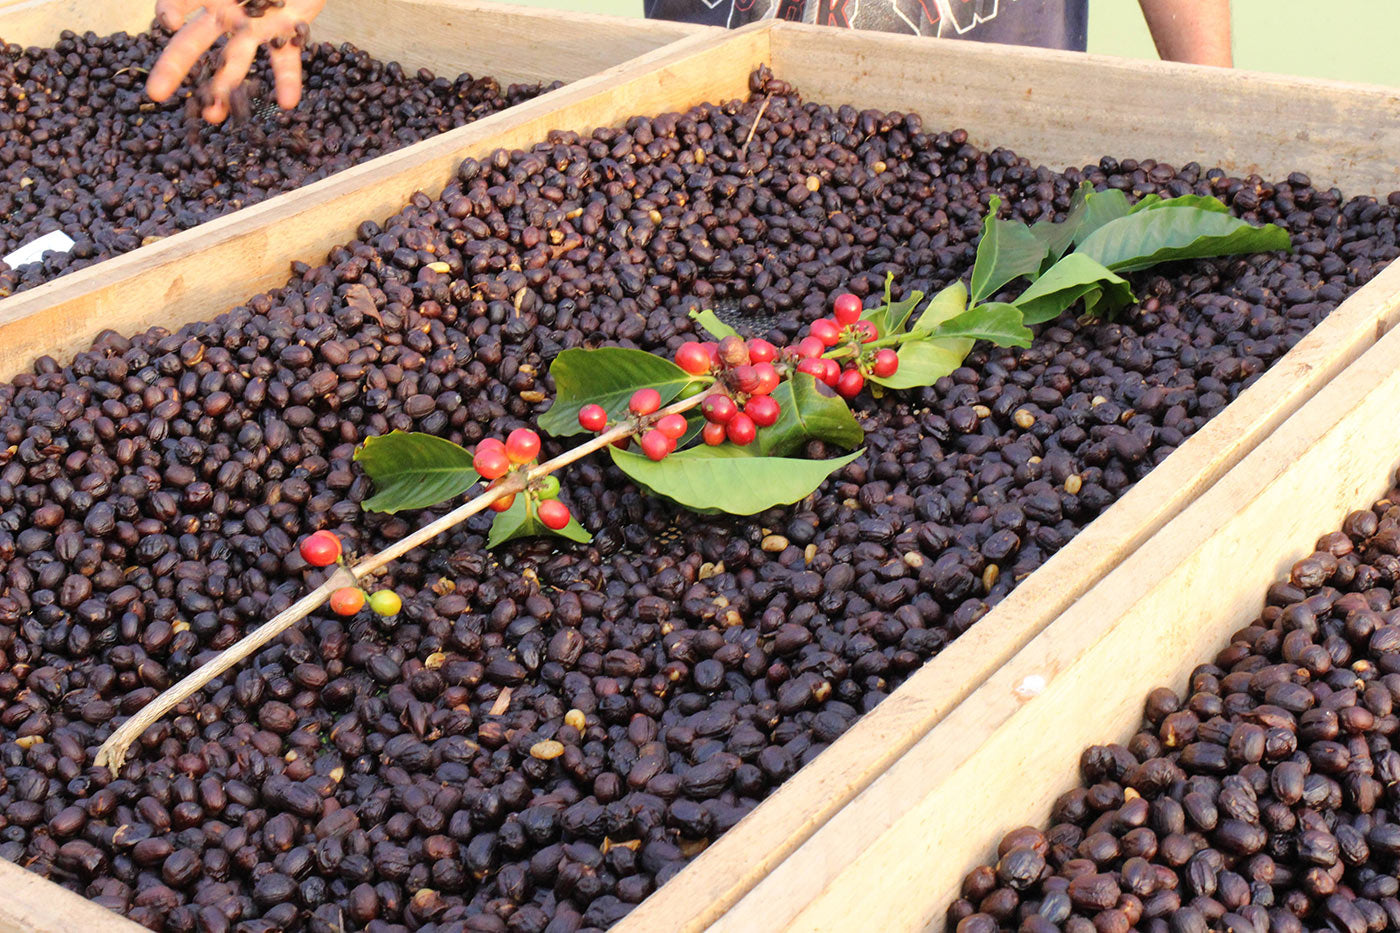 "<div id=""attachment_578"" class=""wp-caption aligncenter""> <p class=""wp-caption-text"">Natural processed coffee on raised African style beds at Granja La Esperanza</p> </div> <p> </p>"